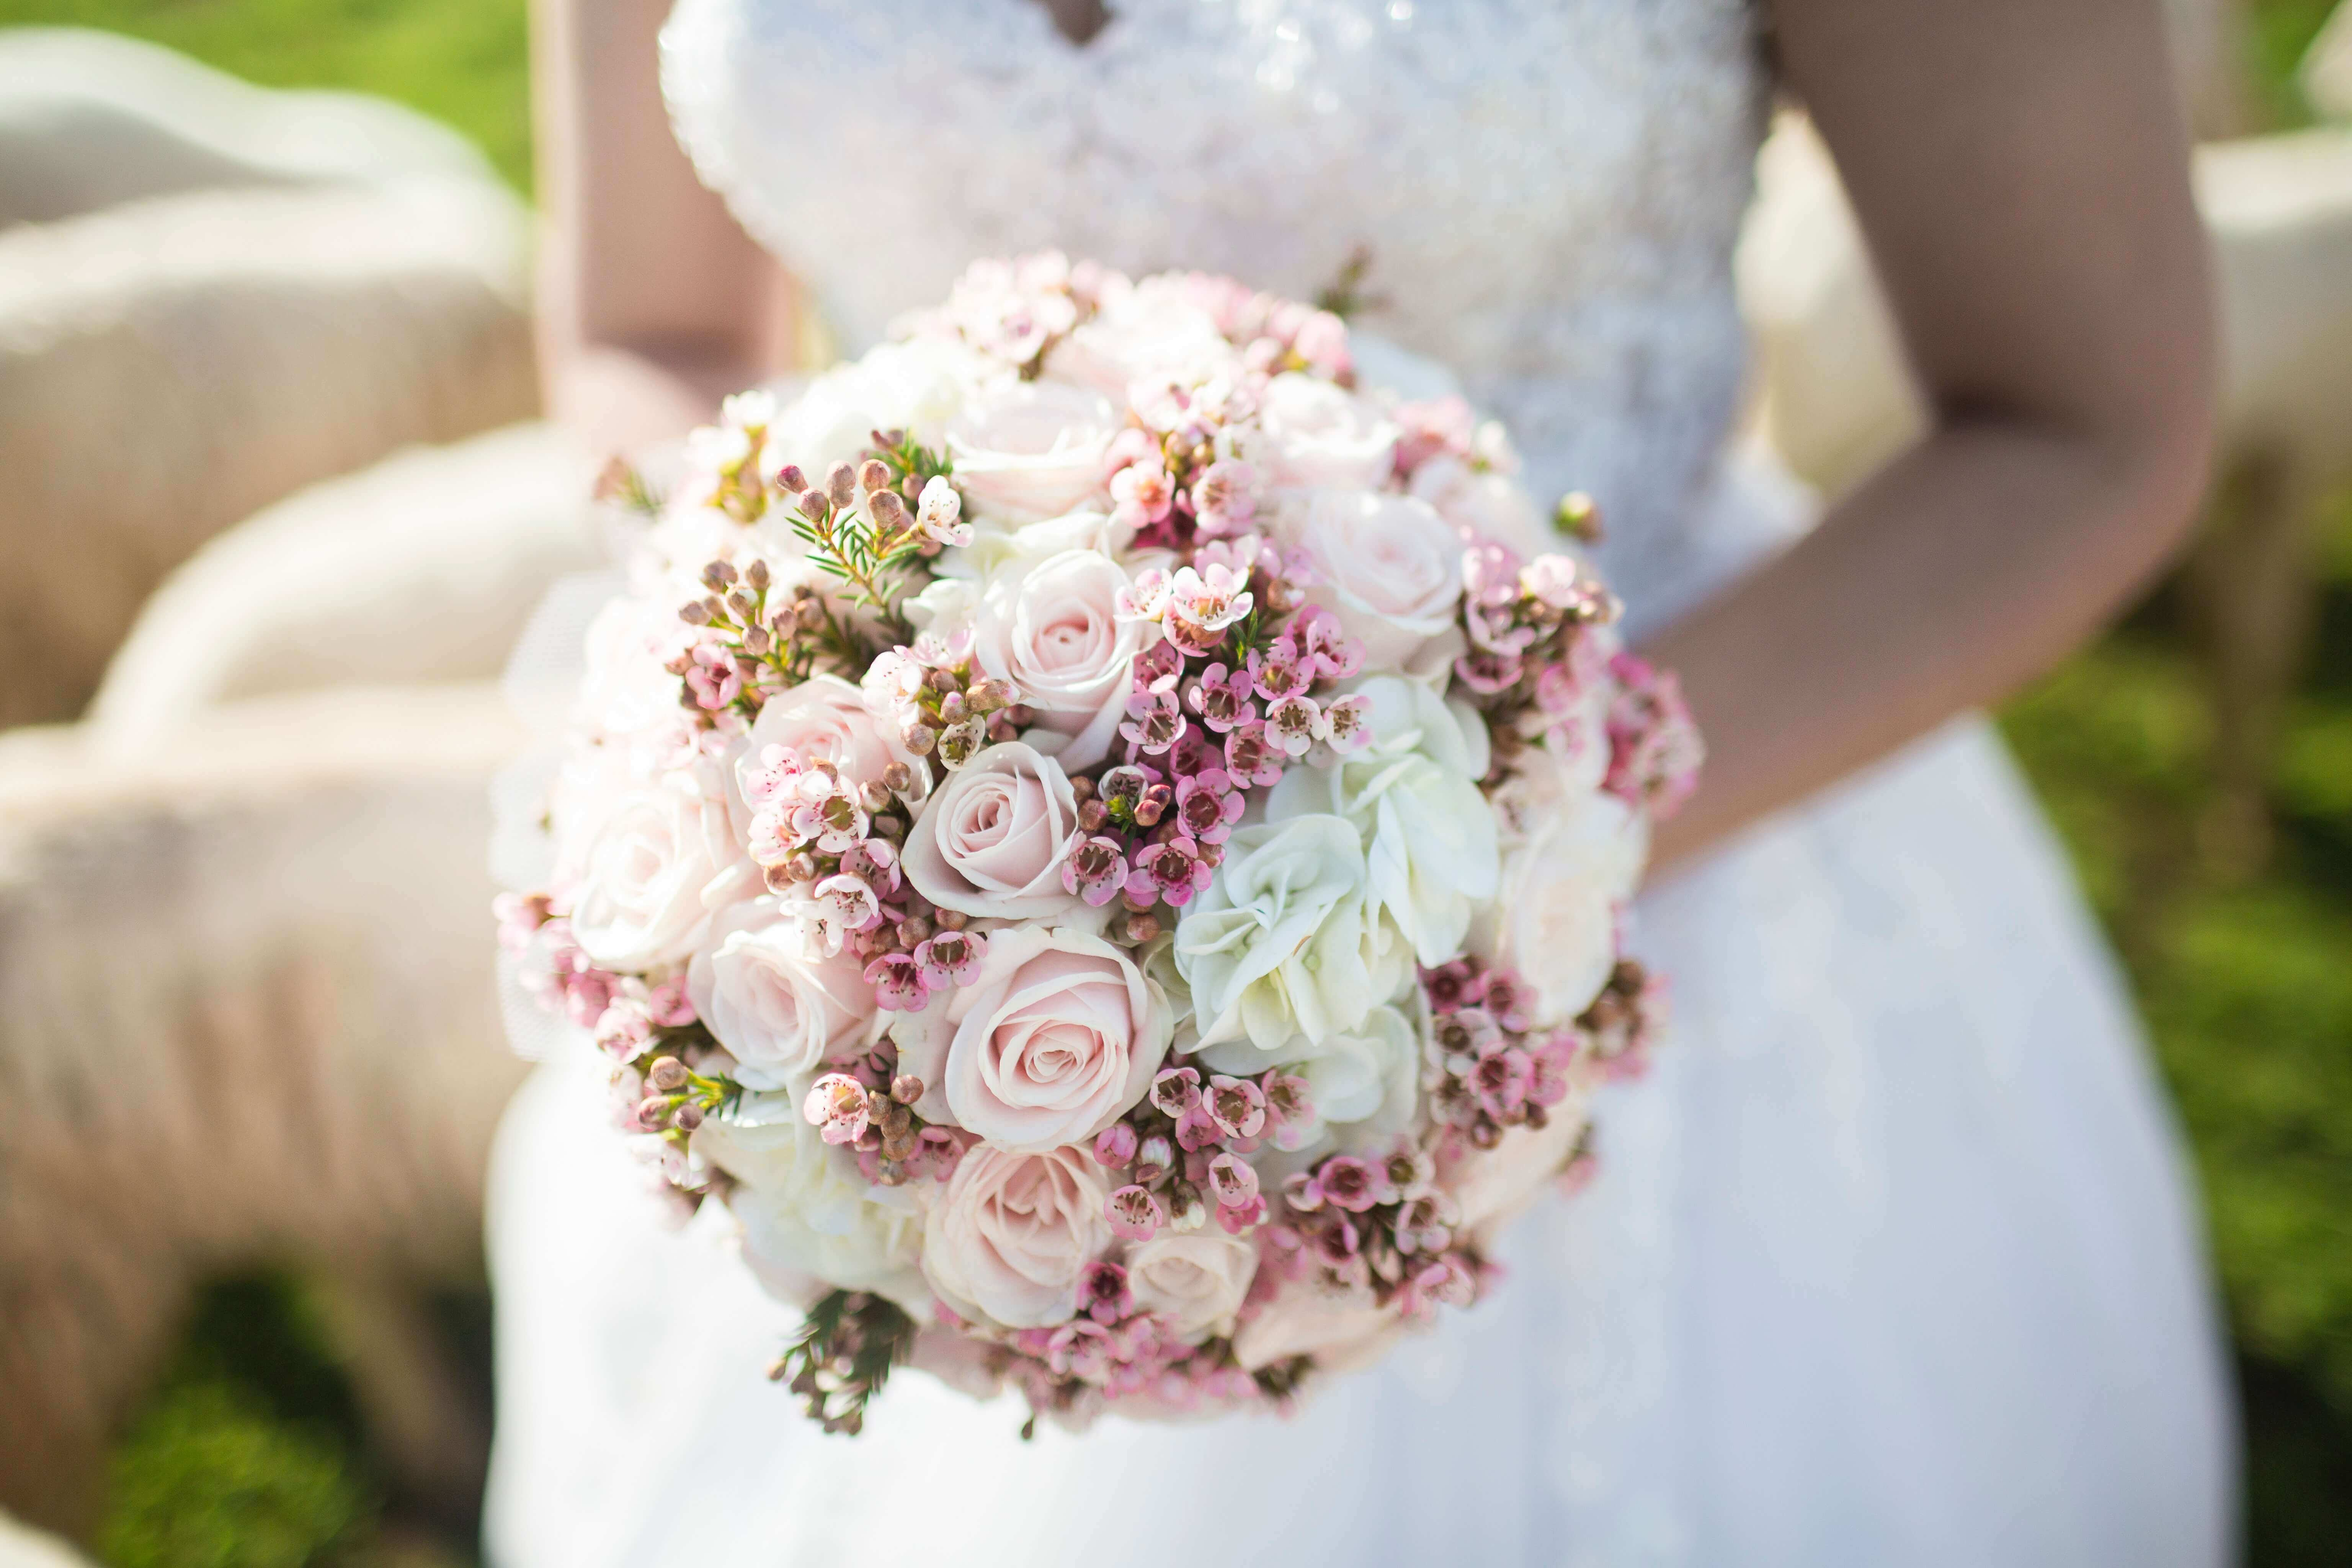 Tips For Choosing A Bridal Bouquet To Match Your Wedding Dress